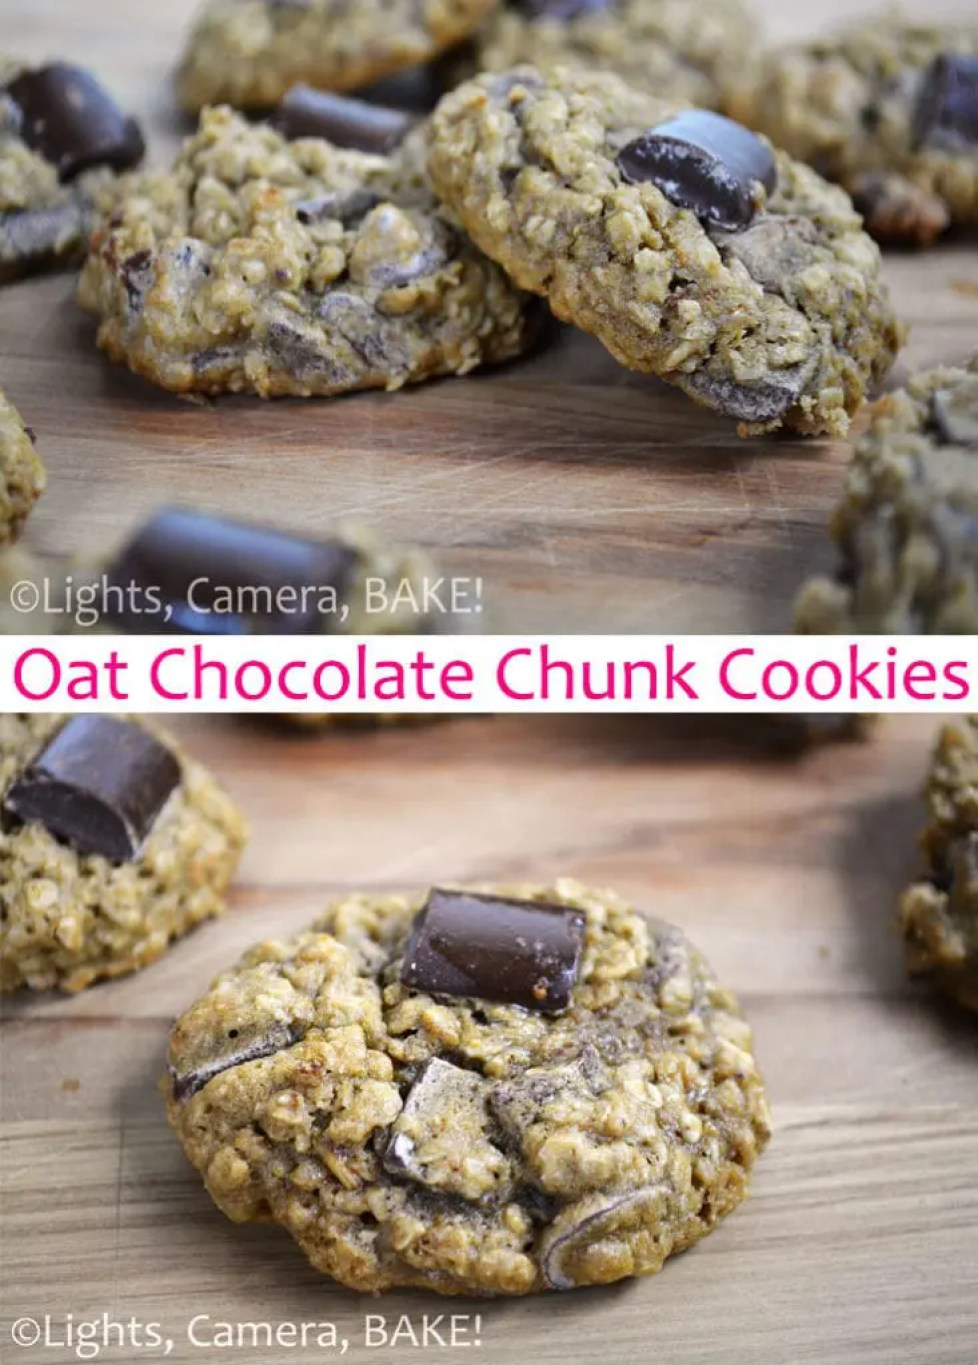 These Chocolate Chip Oat Cookies are soft and chewy chocolate chip cookies with a lovely texture and added flavour from the oats.  #oatchocolatechipcookies #oatcookies #chocolatechipcookies